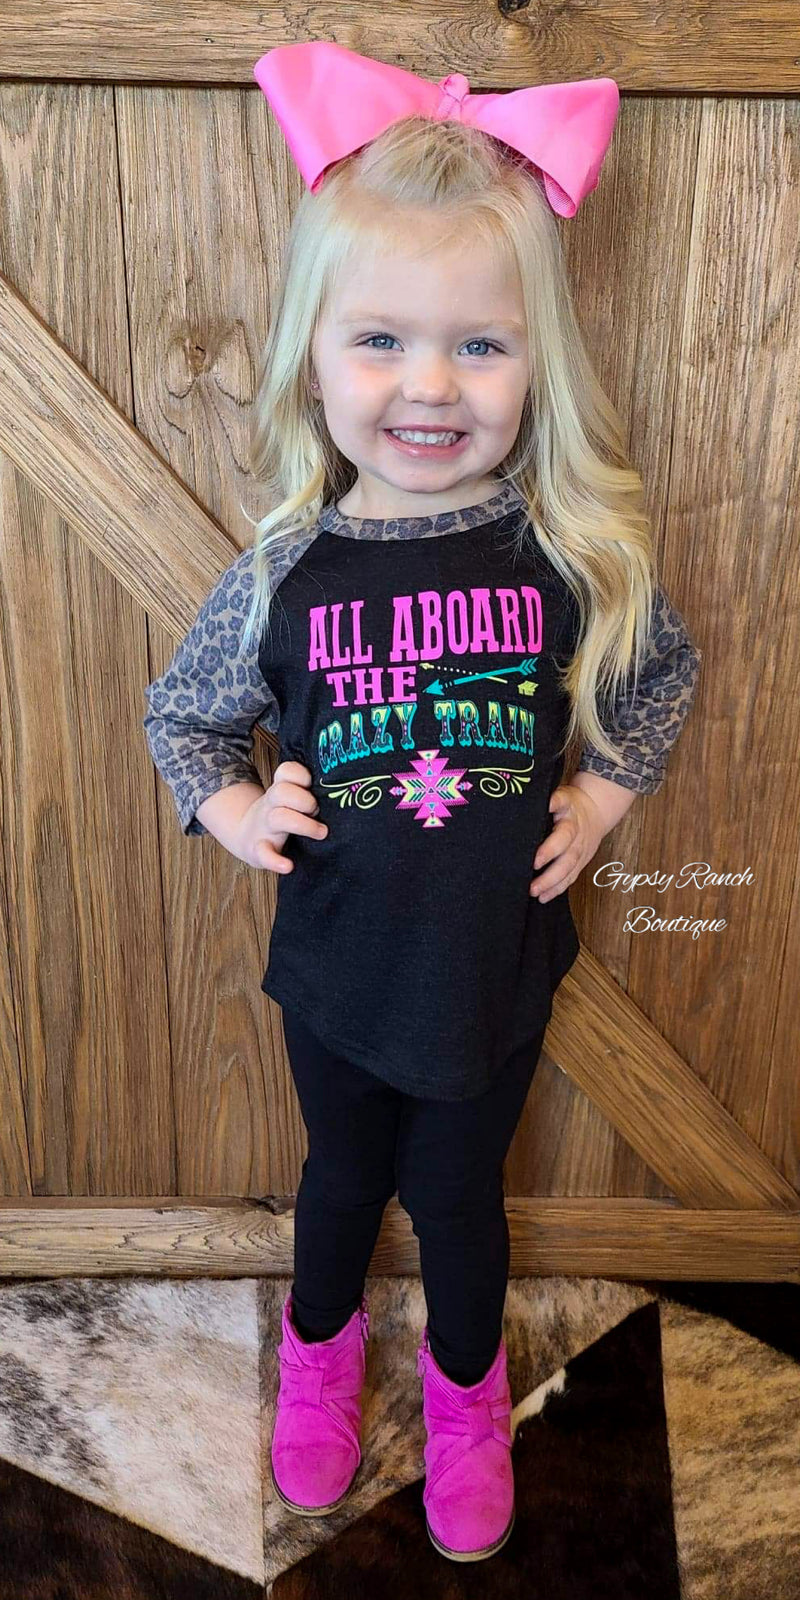 Kids All Aboard The Crazy Train Top